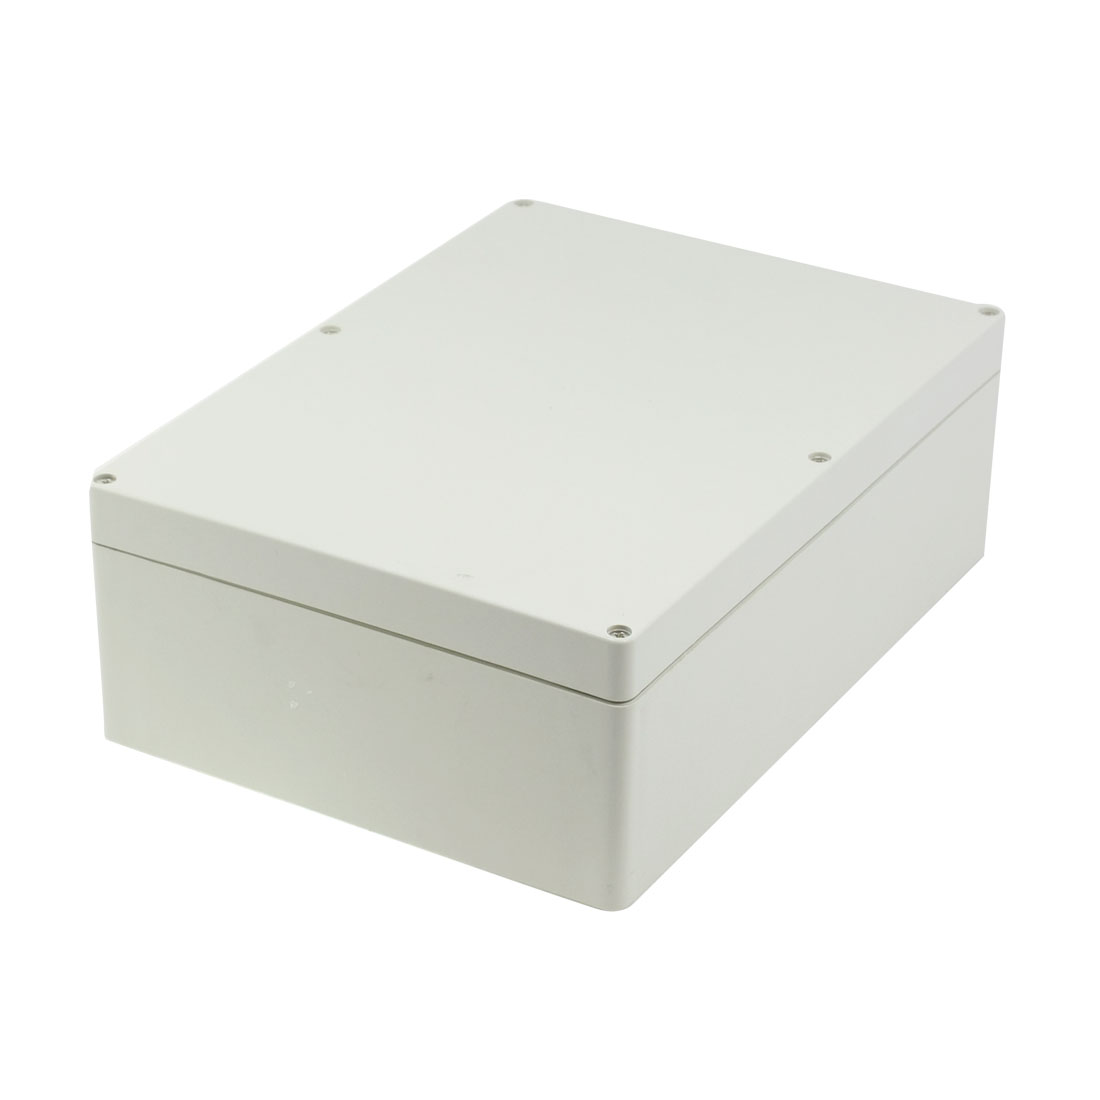 290mm x 210mm x 100mm Plastic Enclosure Case DIY Junction Box